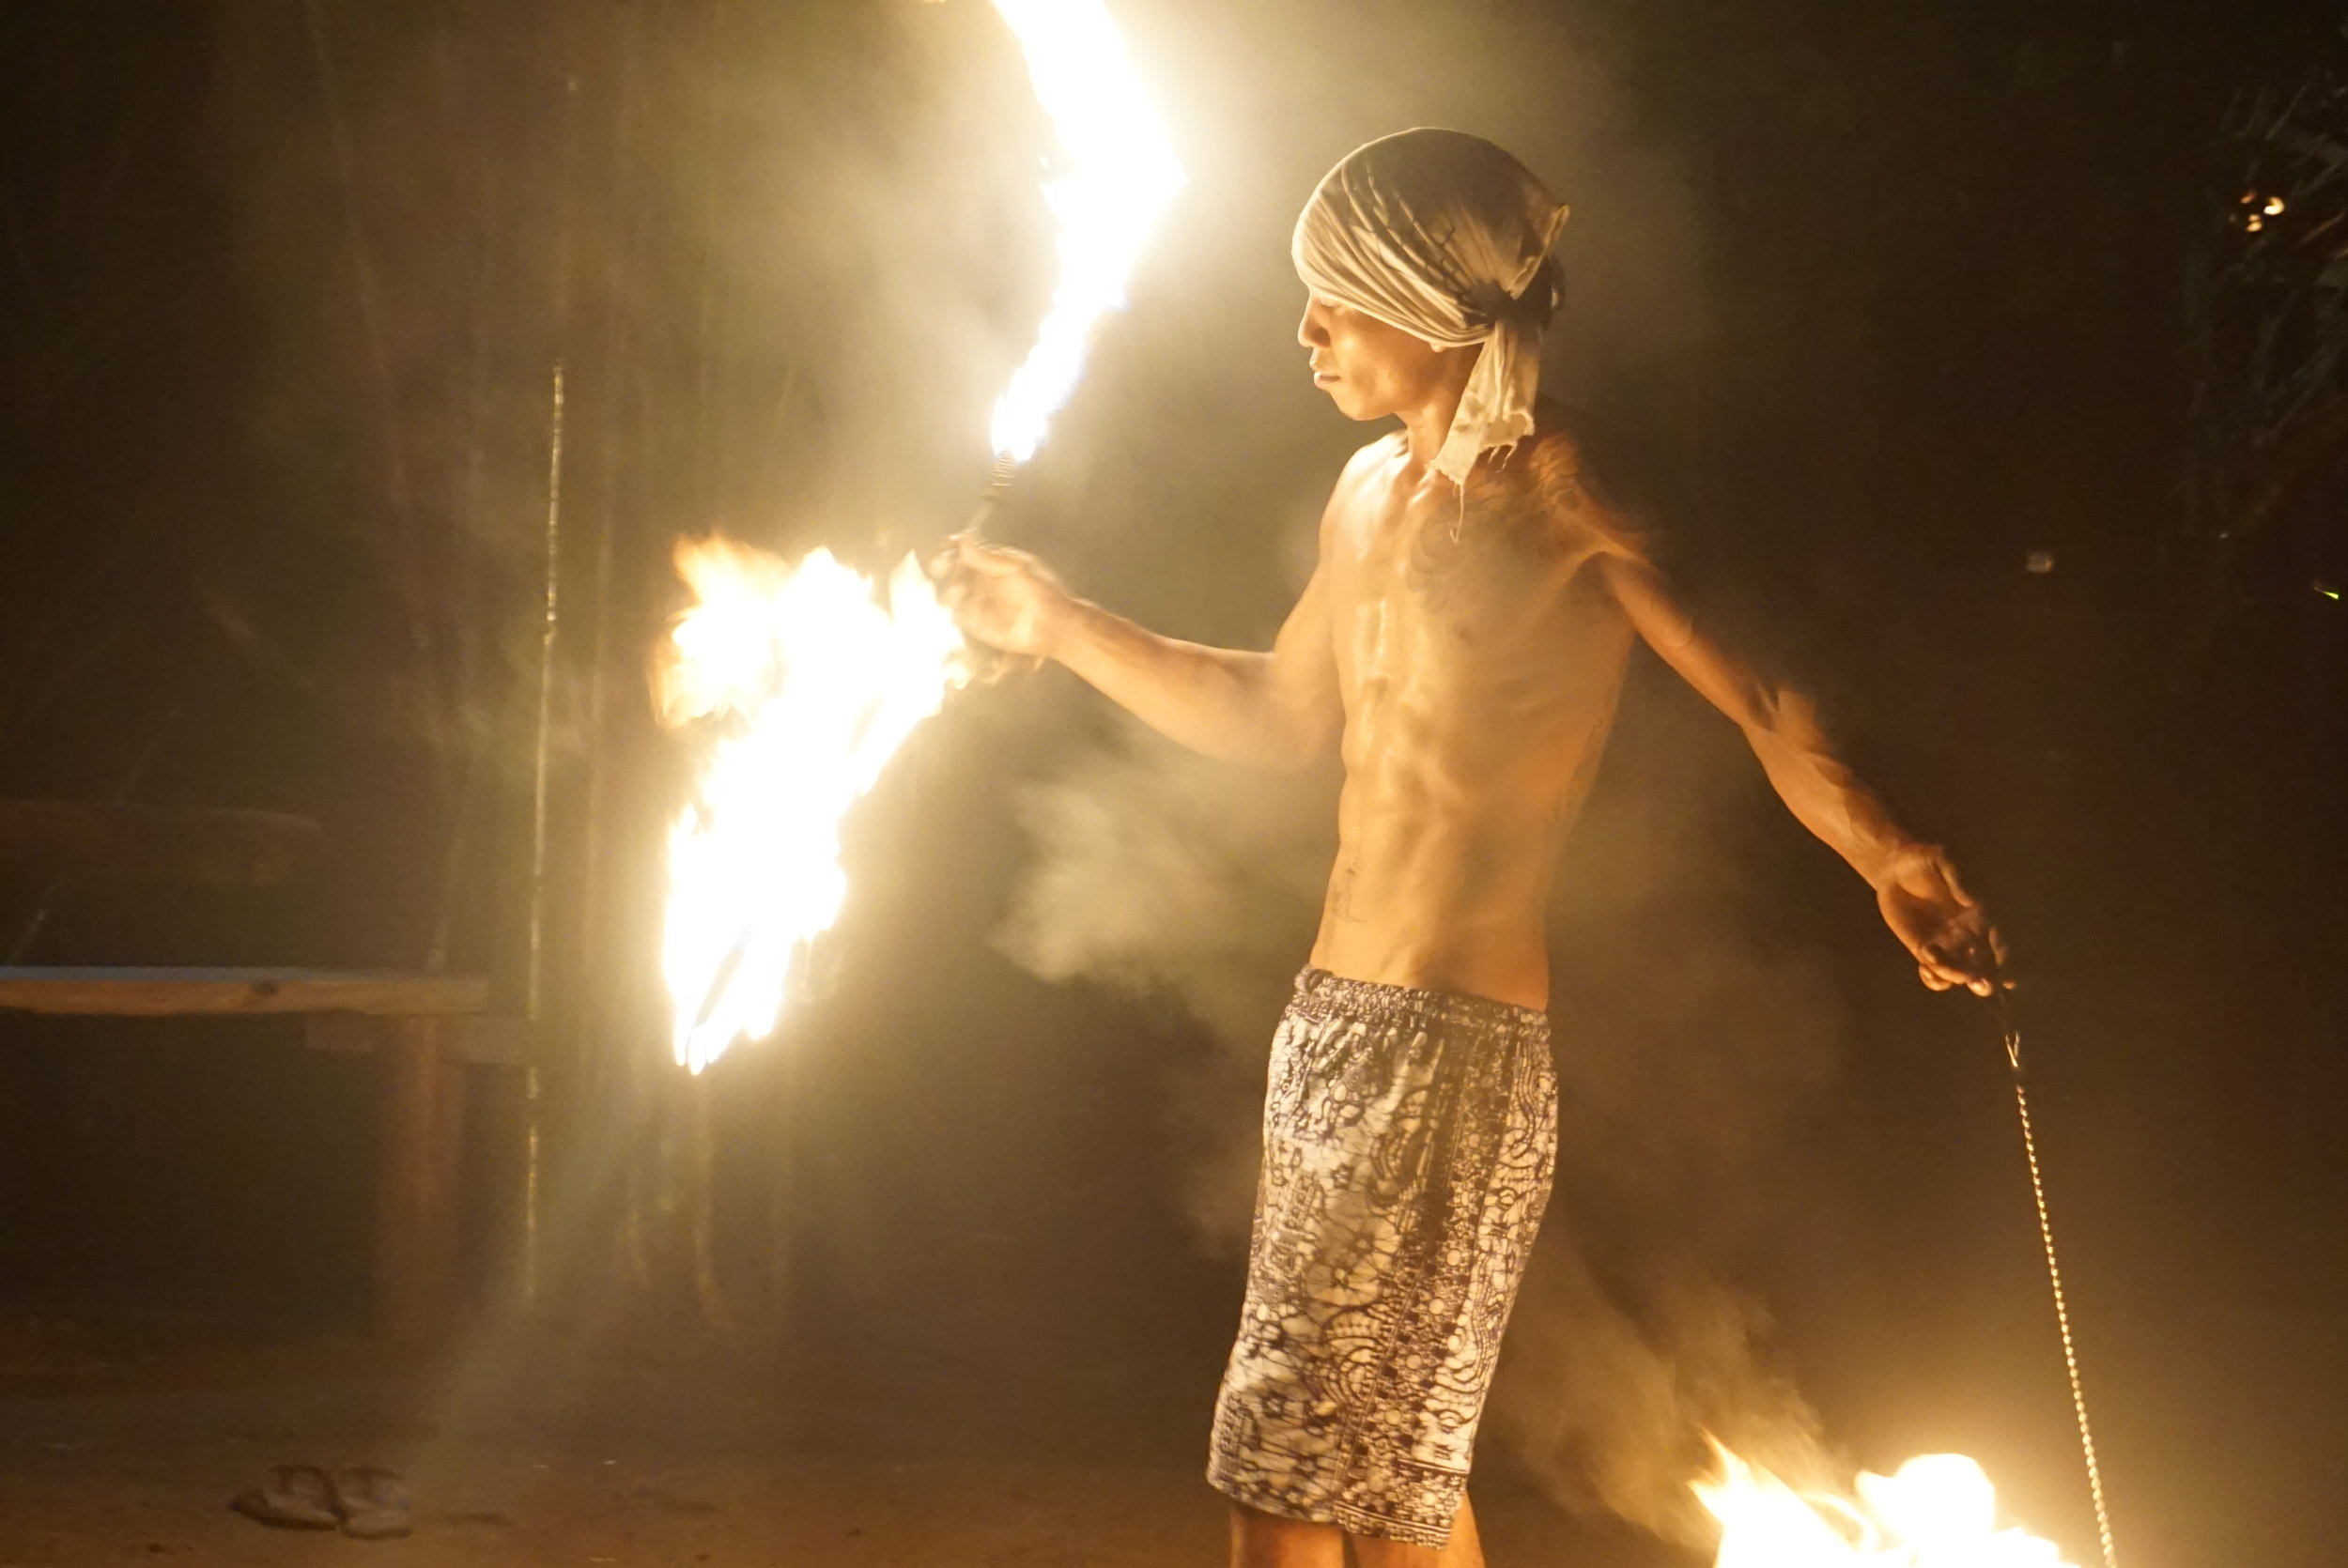 What fire show?    Hey, totally unrelated, what is the legal age in Myanmar? Asking for a friend.